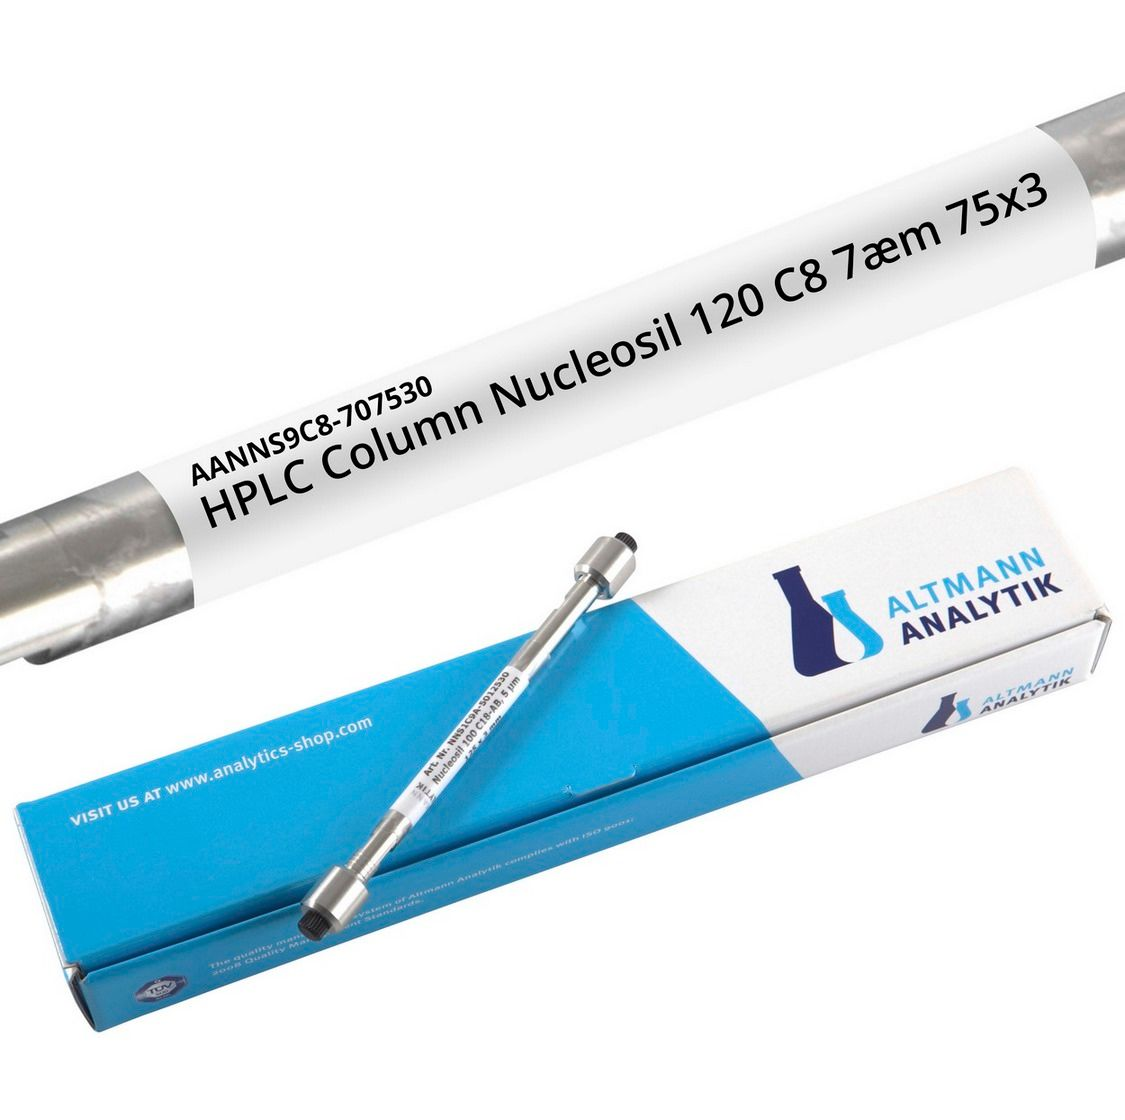 HPLC Column Nucleosil 120 C8 7µm 75x3 mm, 120A